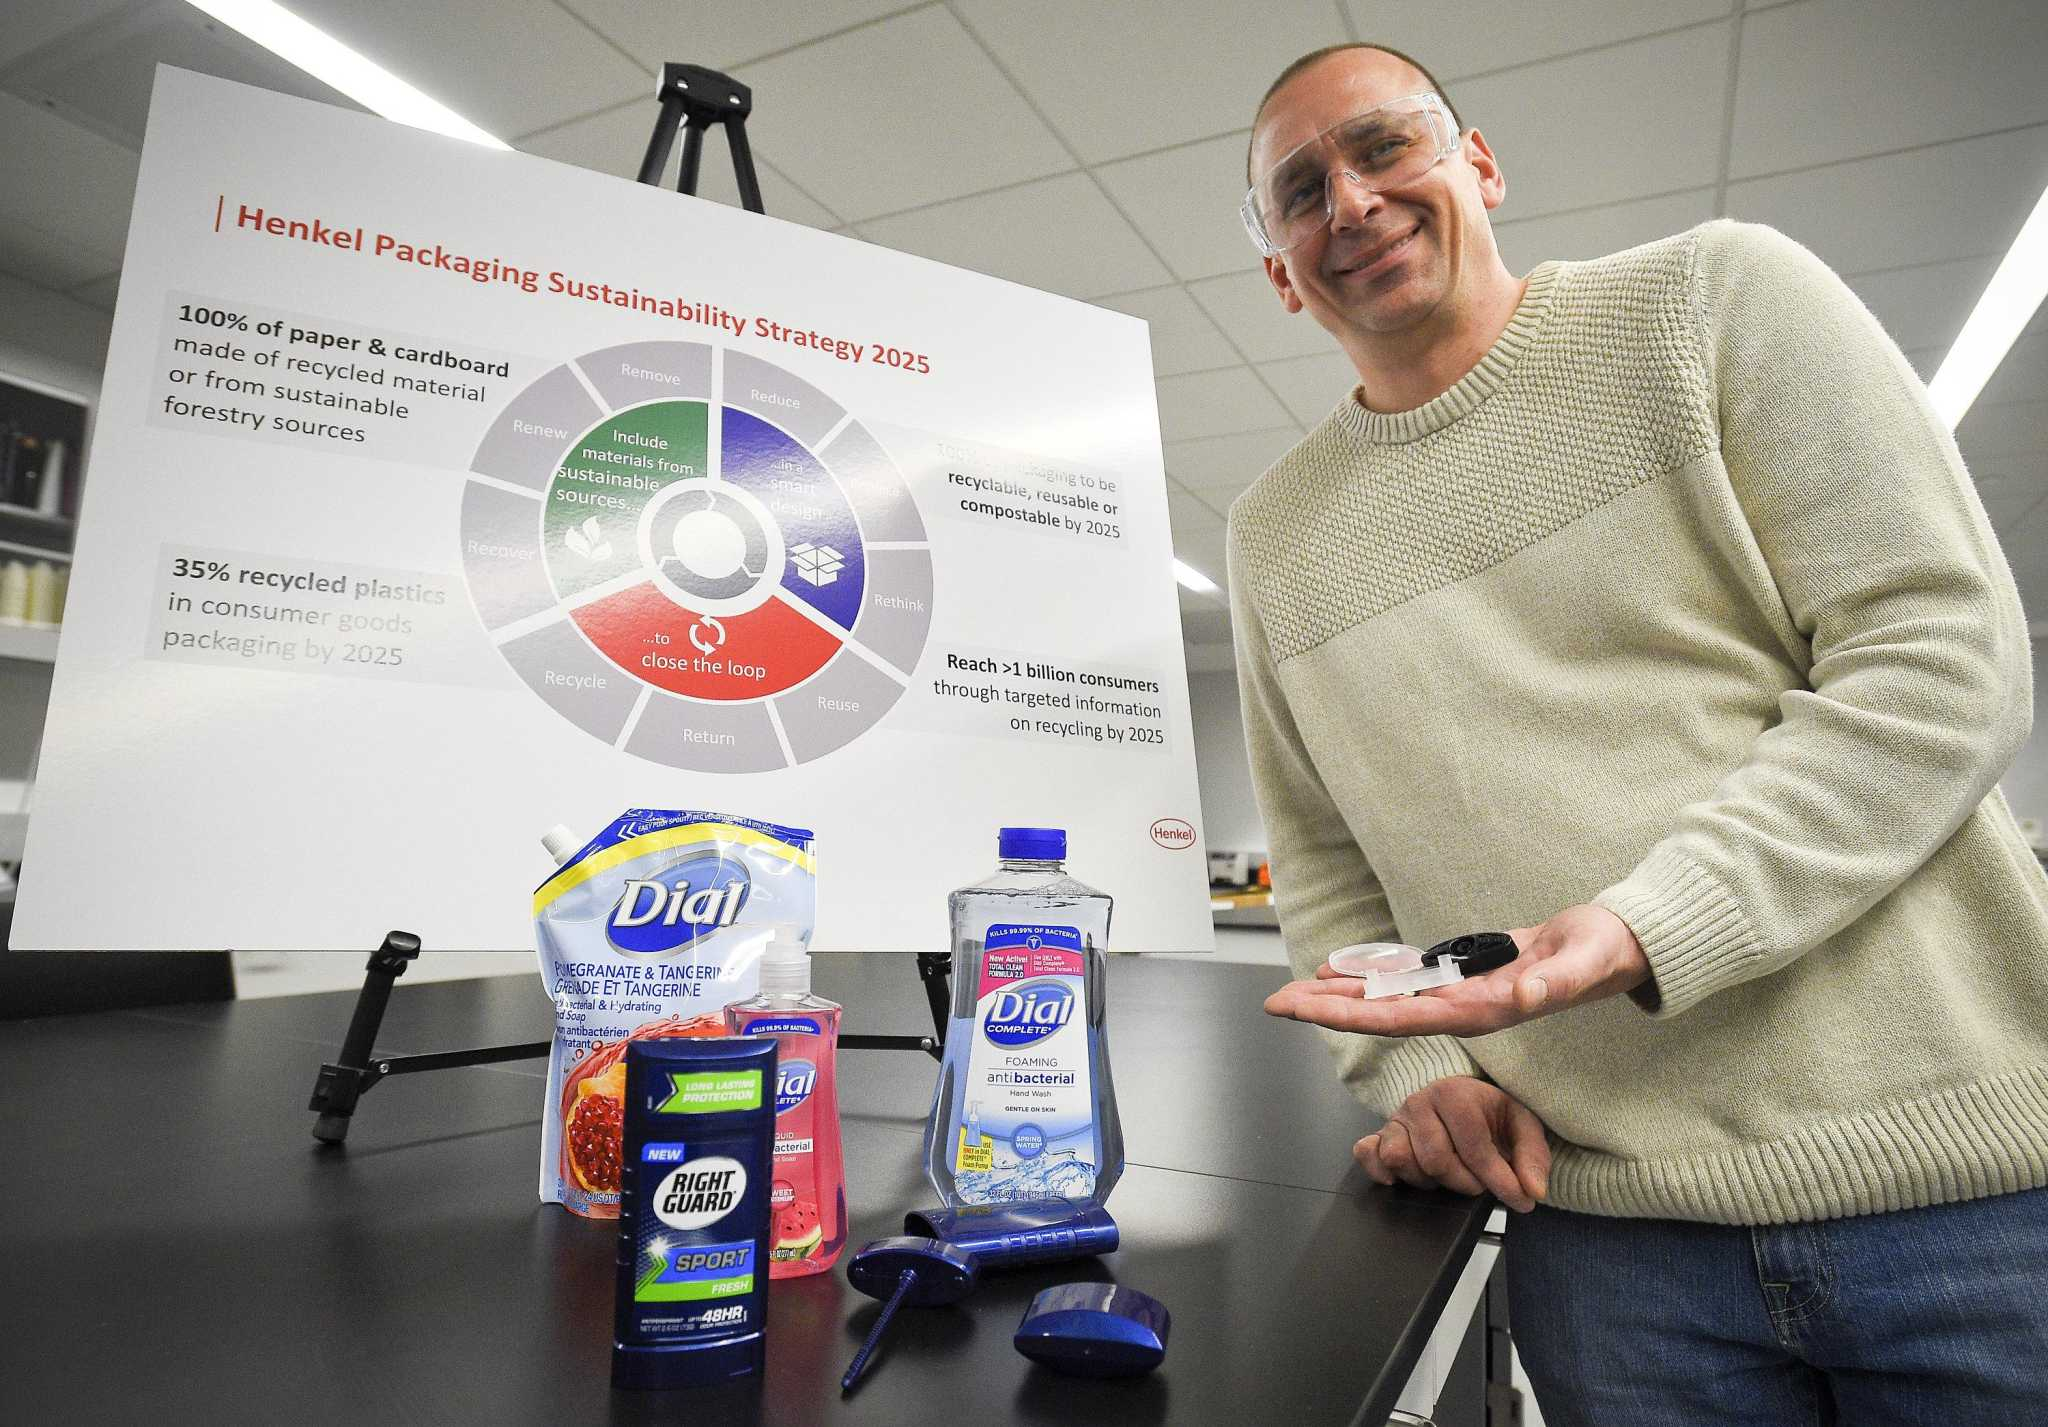 'Behavior has shifted:' Henkel's handwashing message sinks in amid COVID pandemic